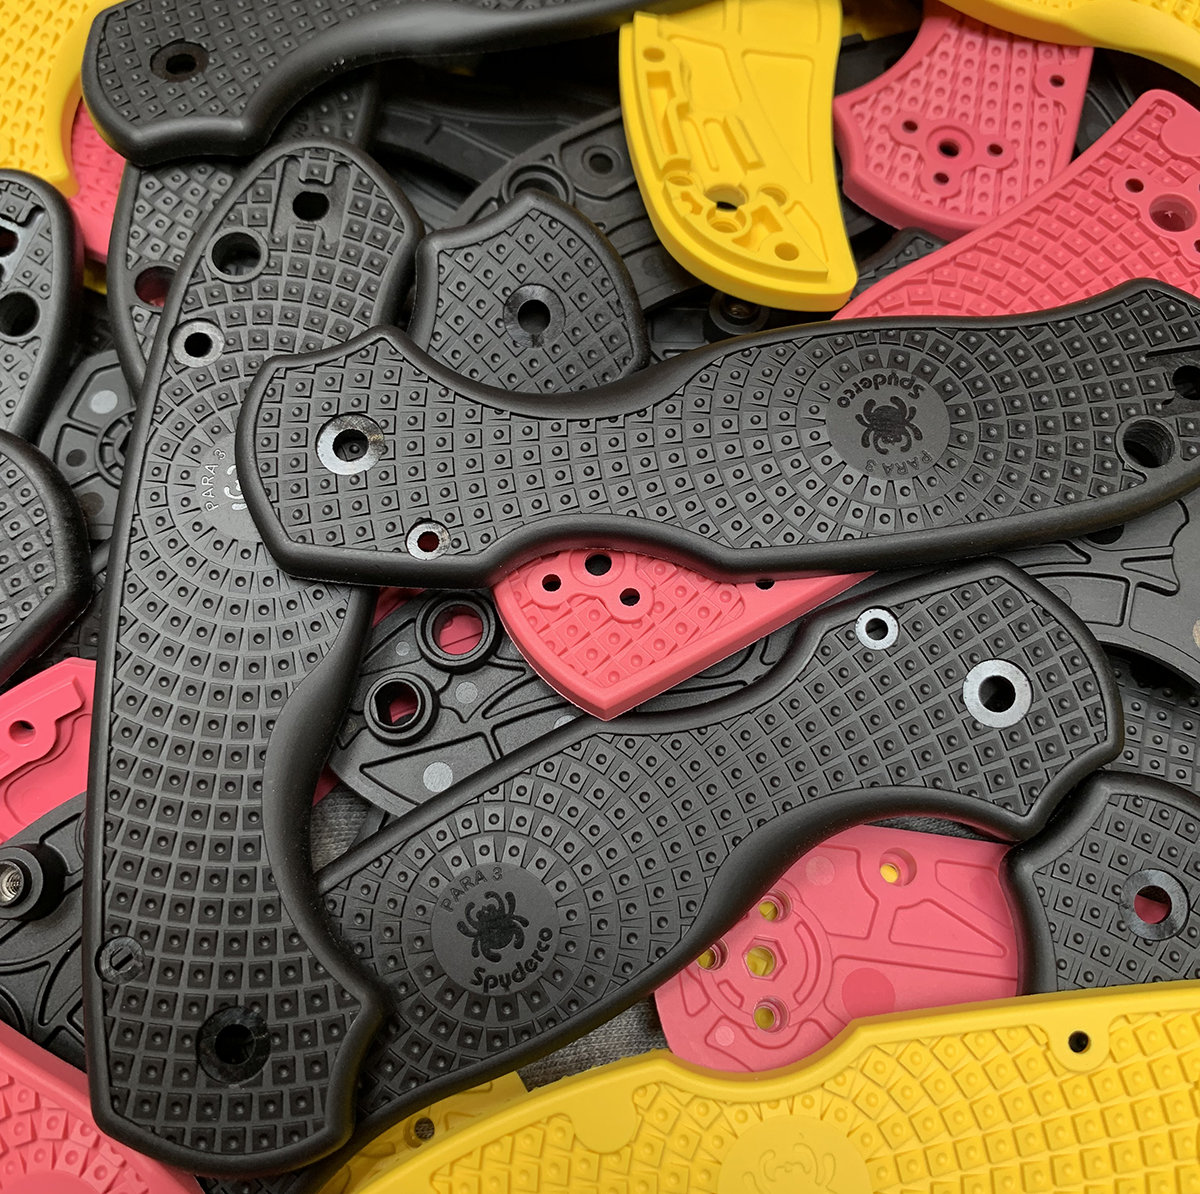 injection molded spyderco knife handles